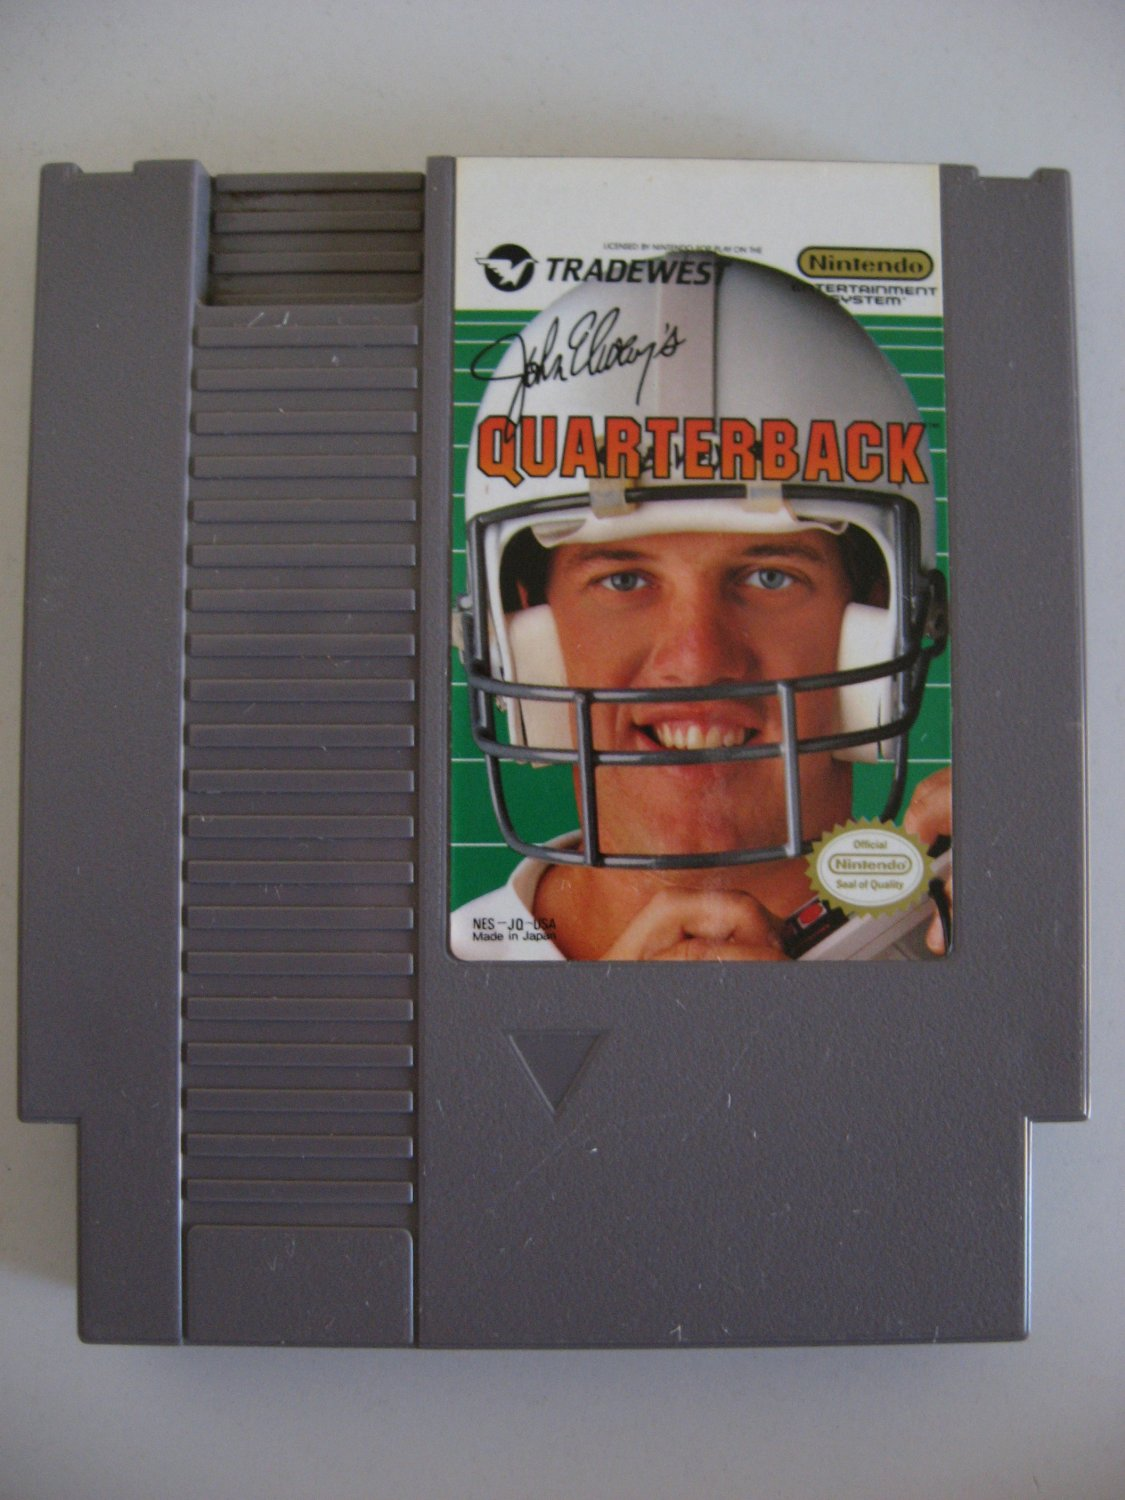 John Elway Quarterback  -  Game Cartridge